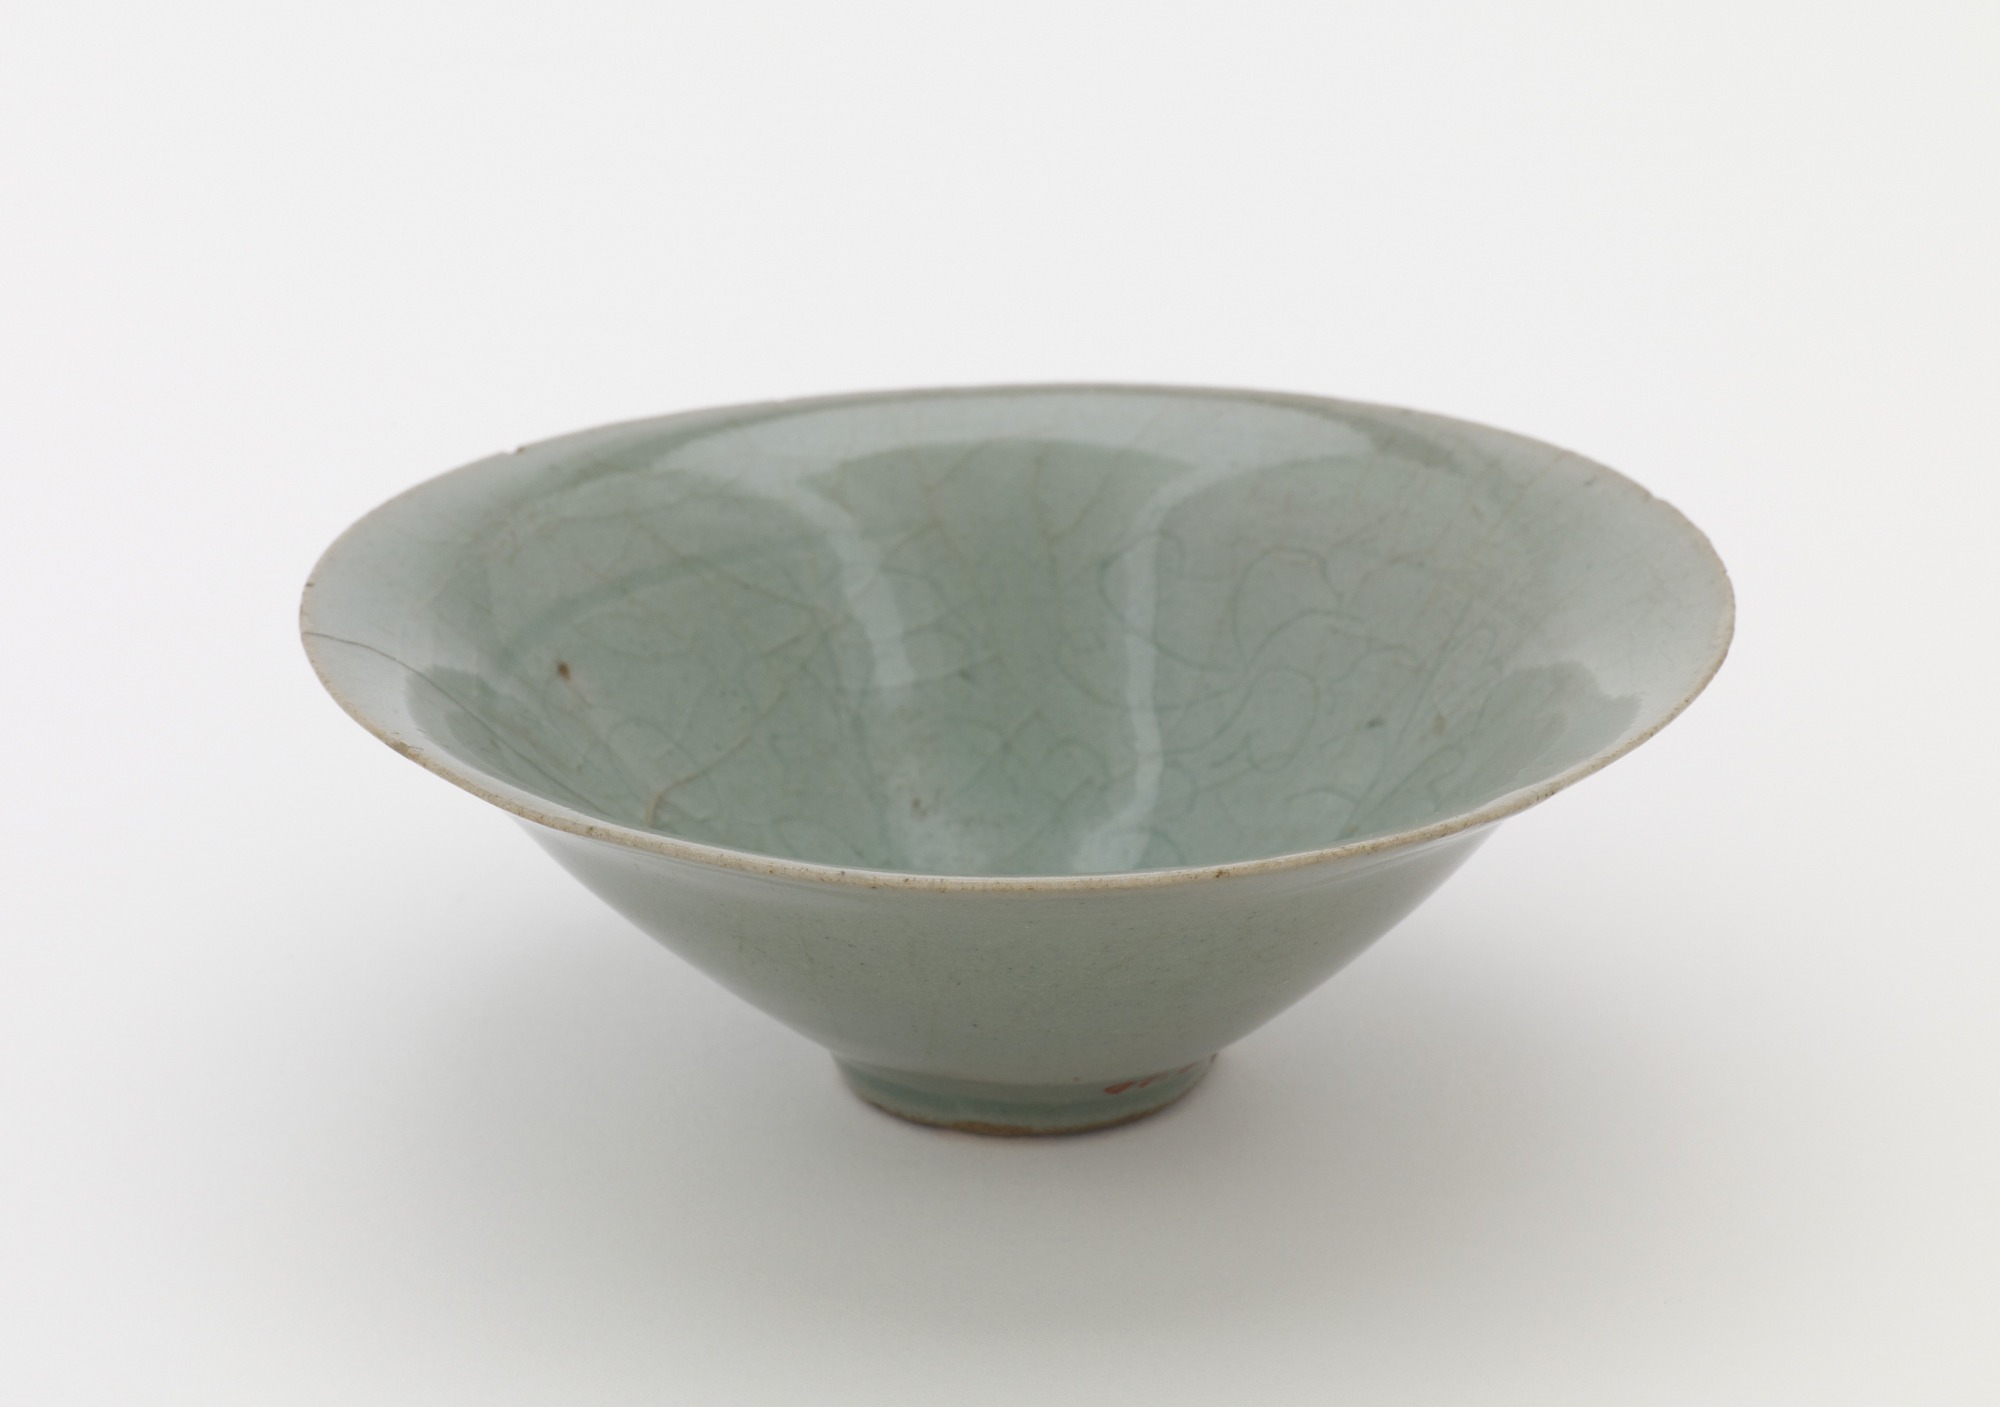 Bowl with incised design of floral spray, 3/4 profile